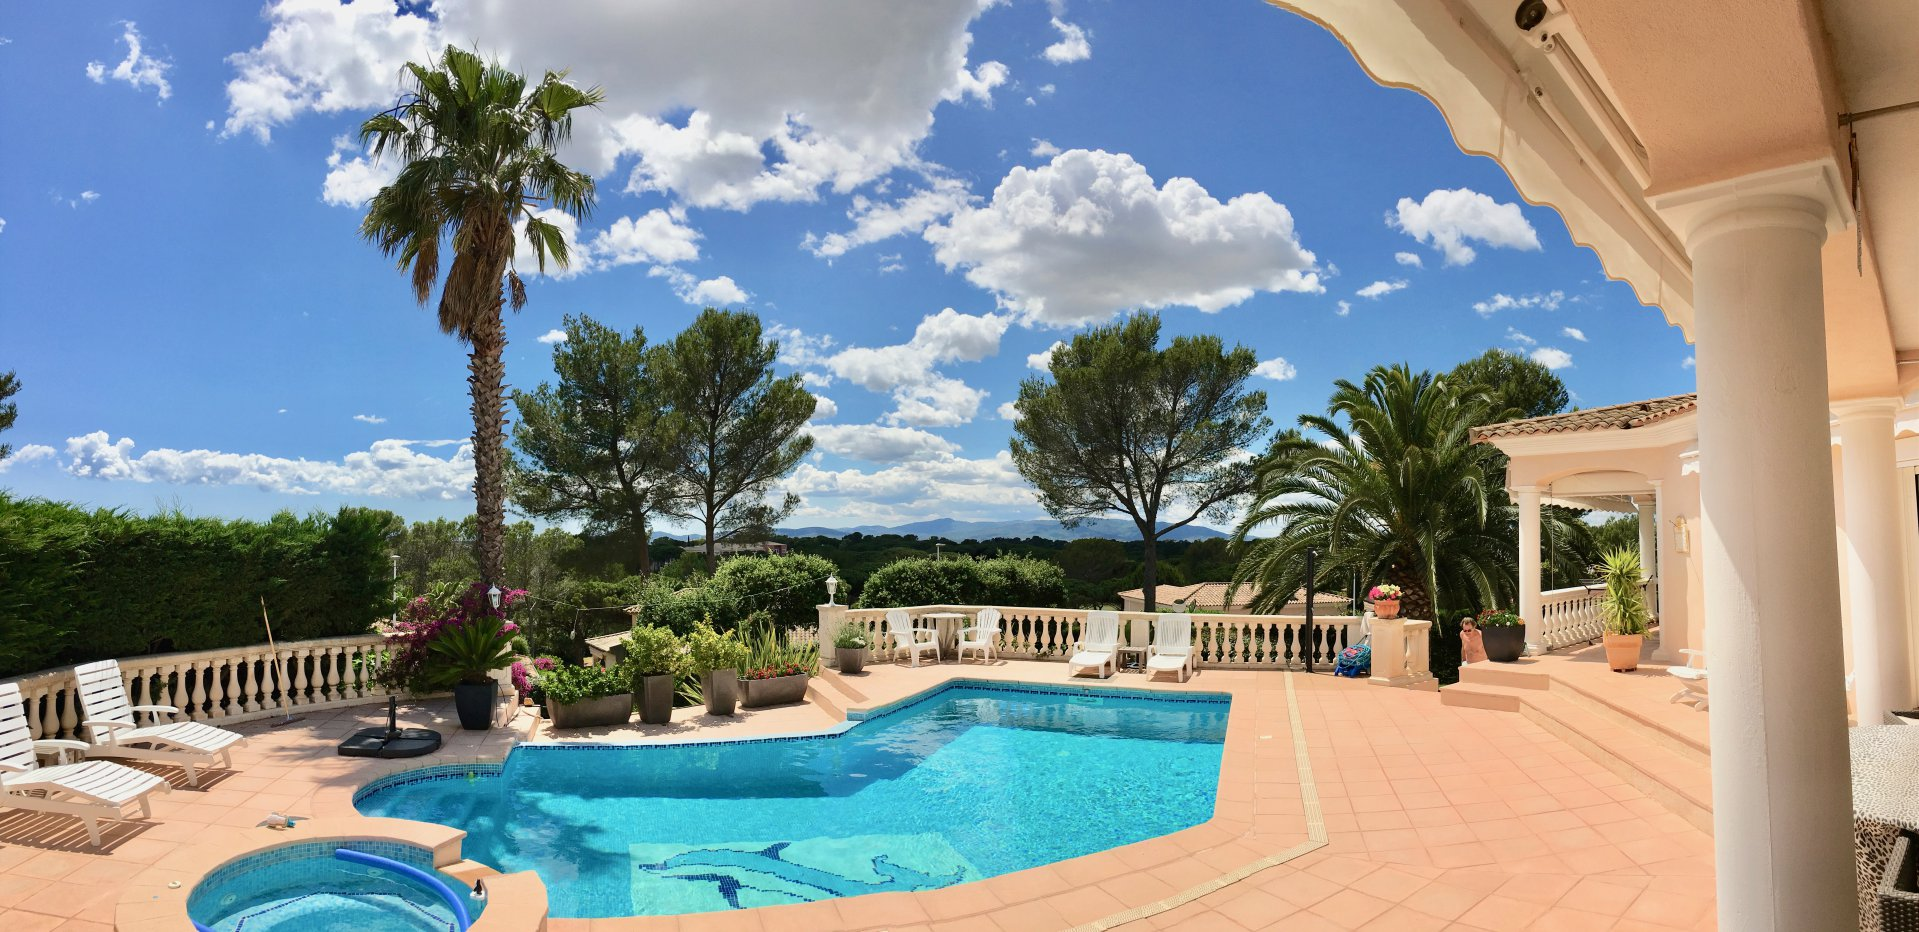 Saint Raphaël - Valescure - Bright, detached villa with stunning views